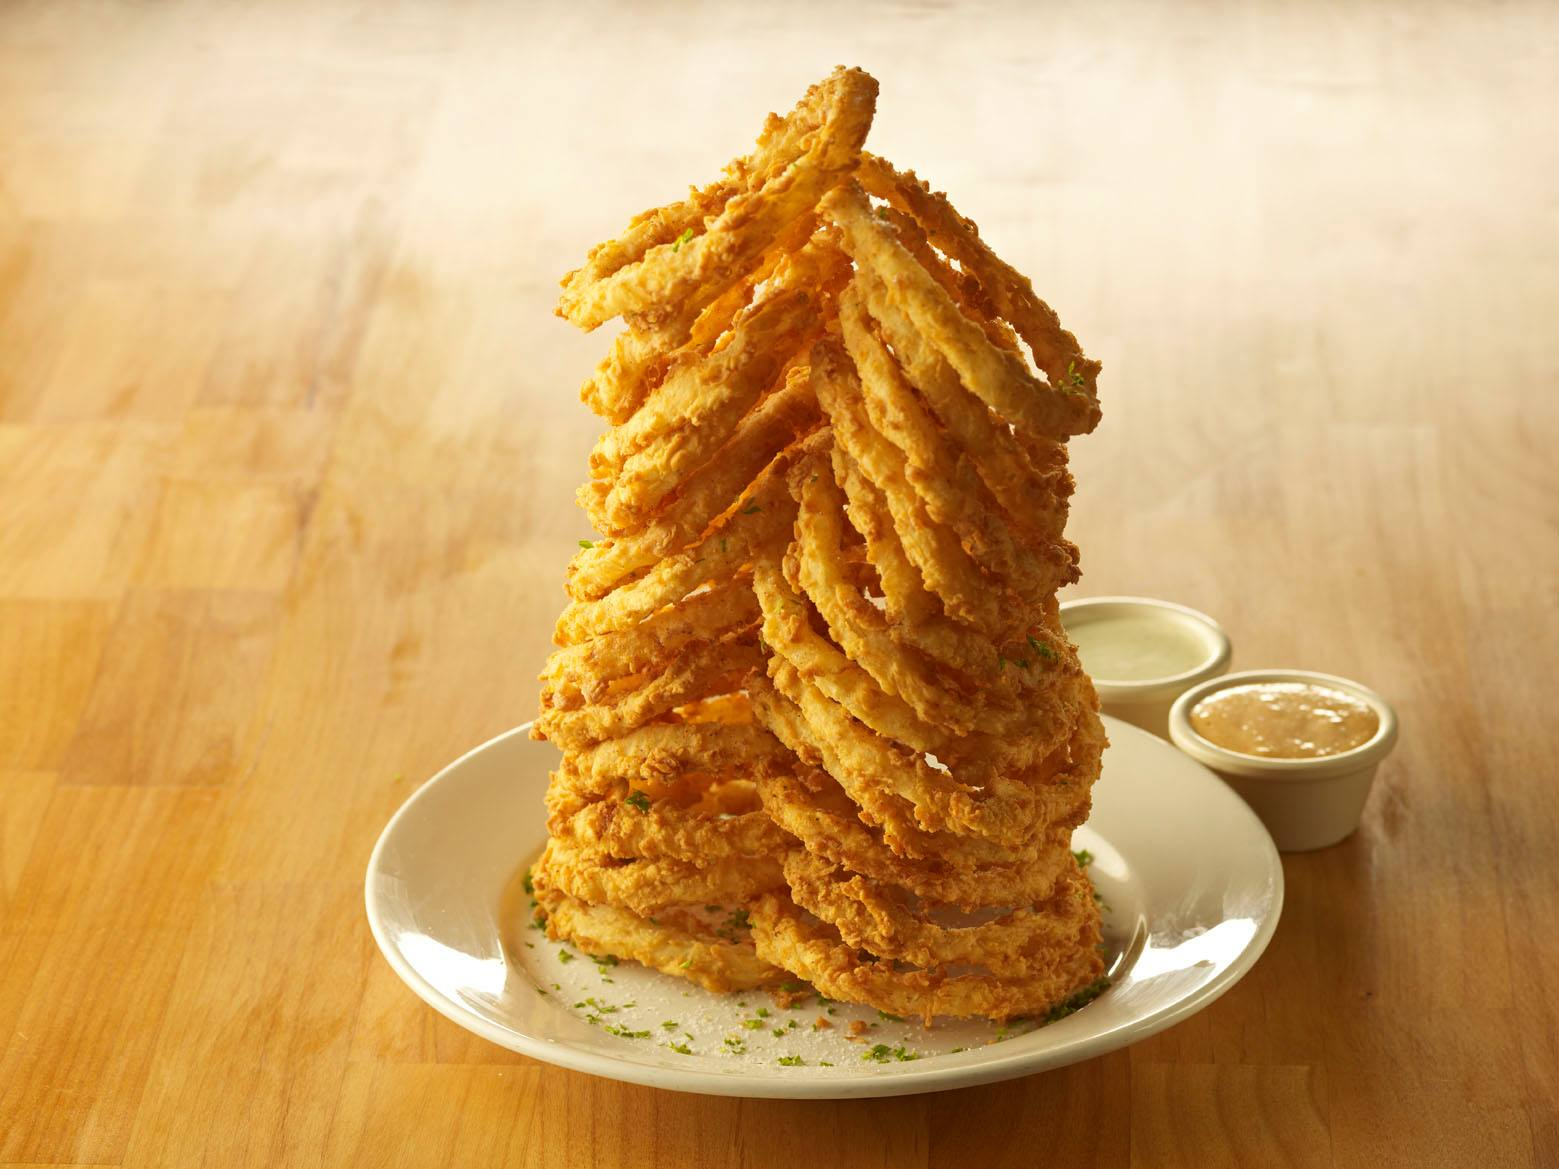 Cheddar S Scratch Kitchen Homemade Onion Rings